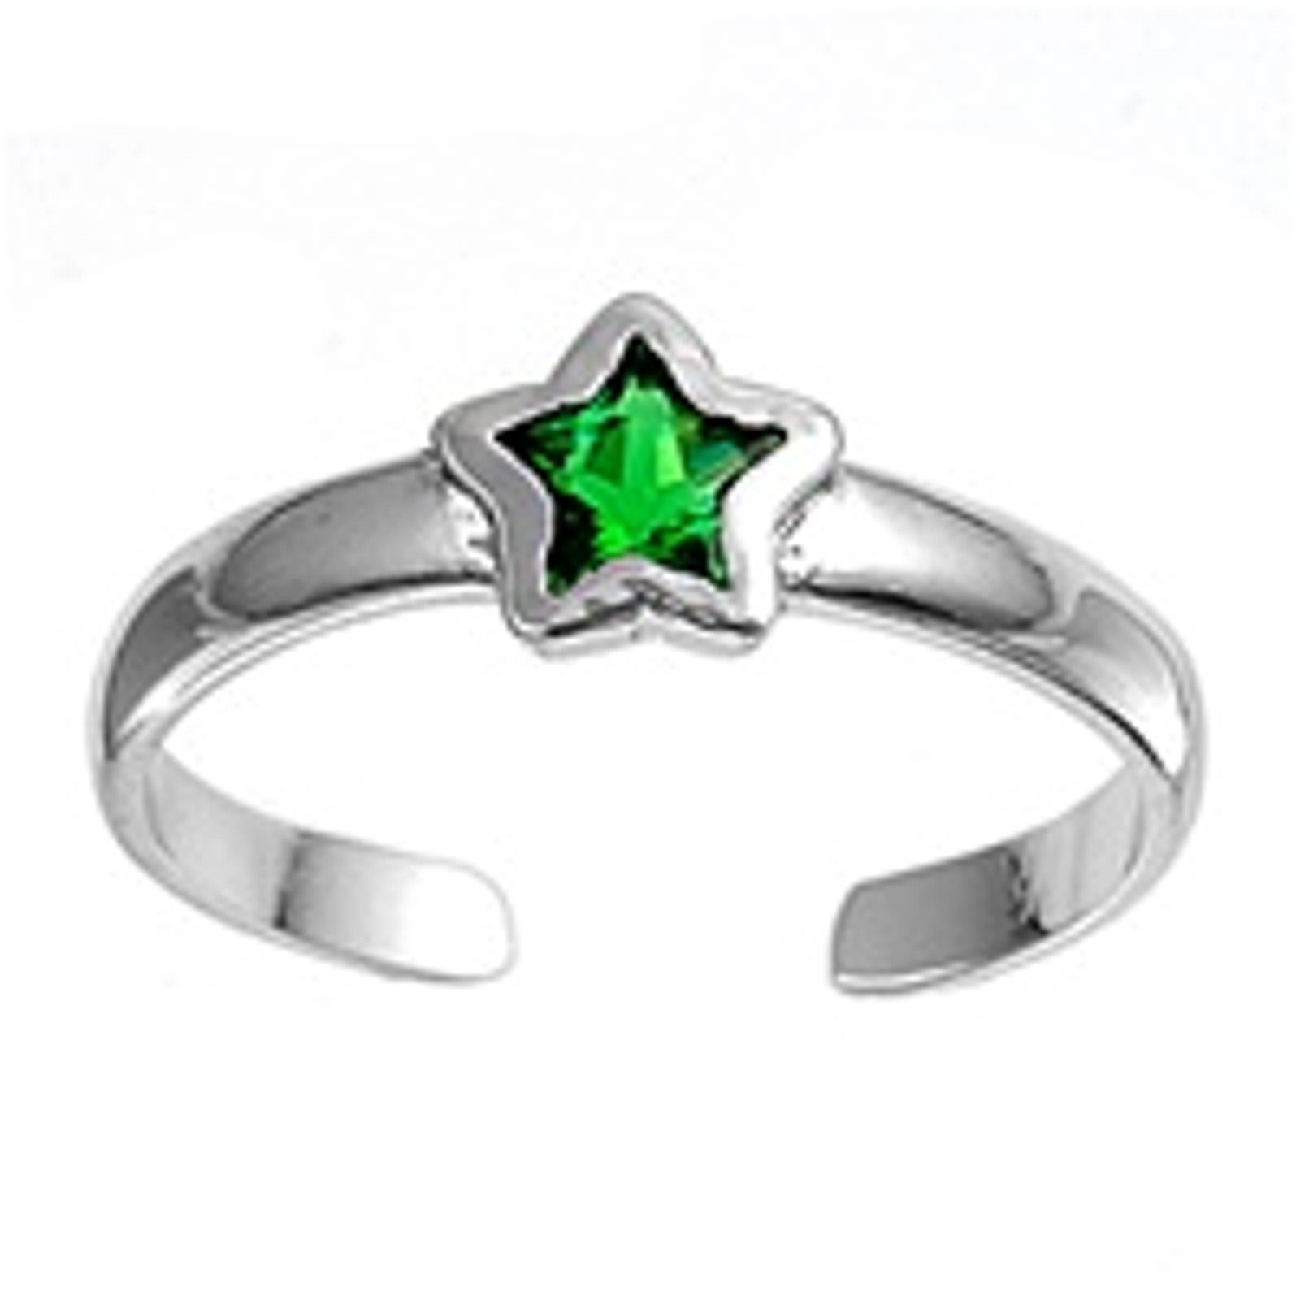 Celestial Green Cubic Zirconia Star Adjustable Toe Ring